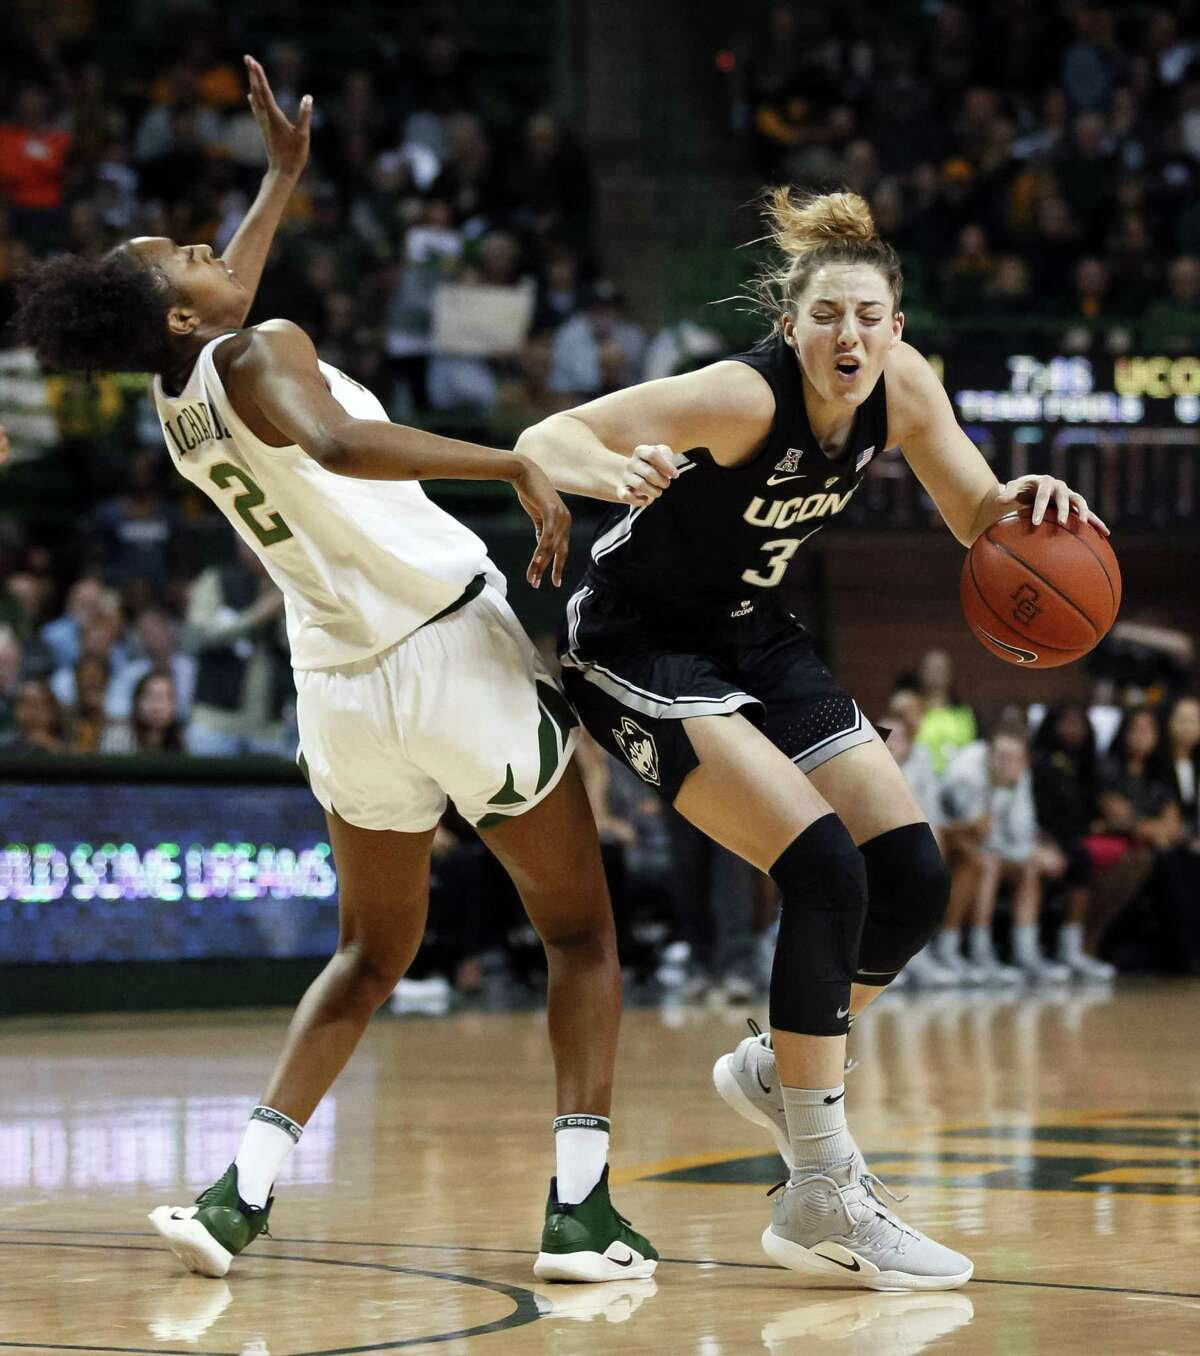 UConn's Katie Lou Samuelson (33) is fouled by Baylor's Didi Richards (2) during Thursday night's game in Waco, Texas.